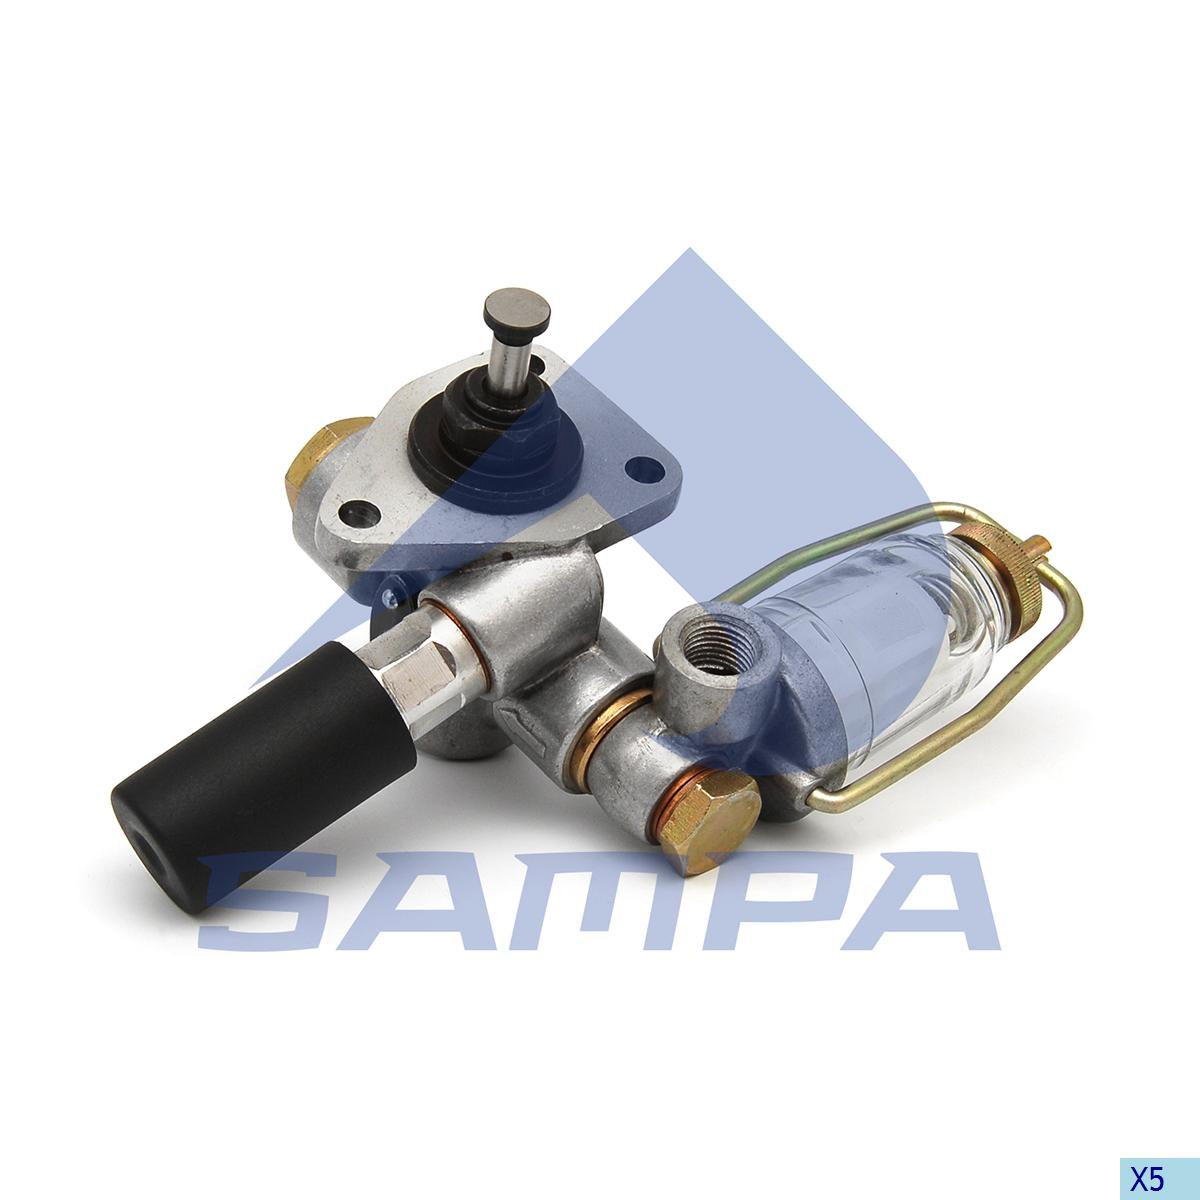 Hand Pump, Feed Pump, Scania, Engine